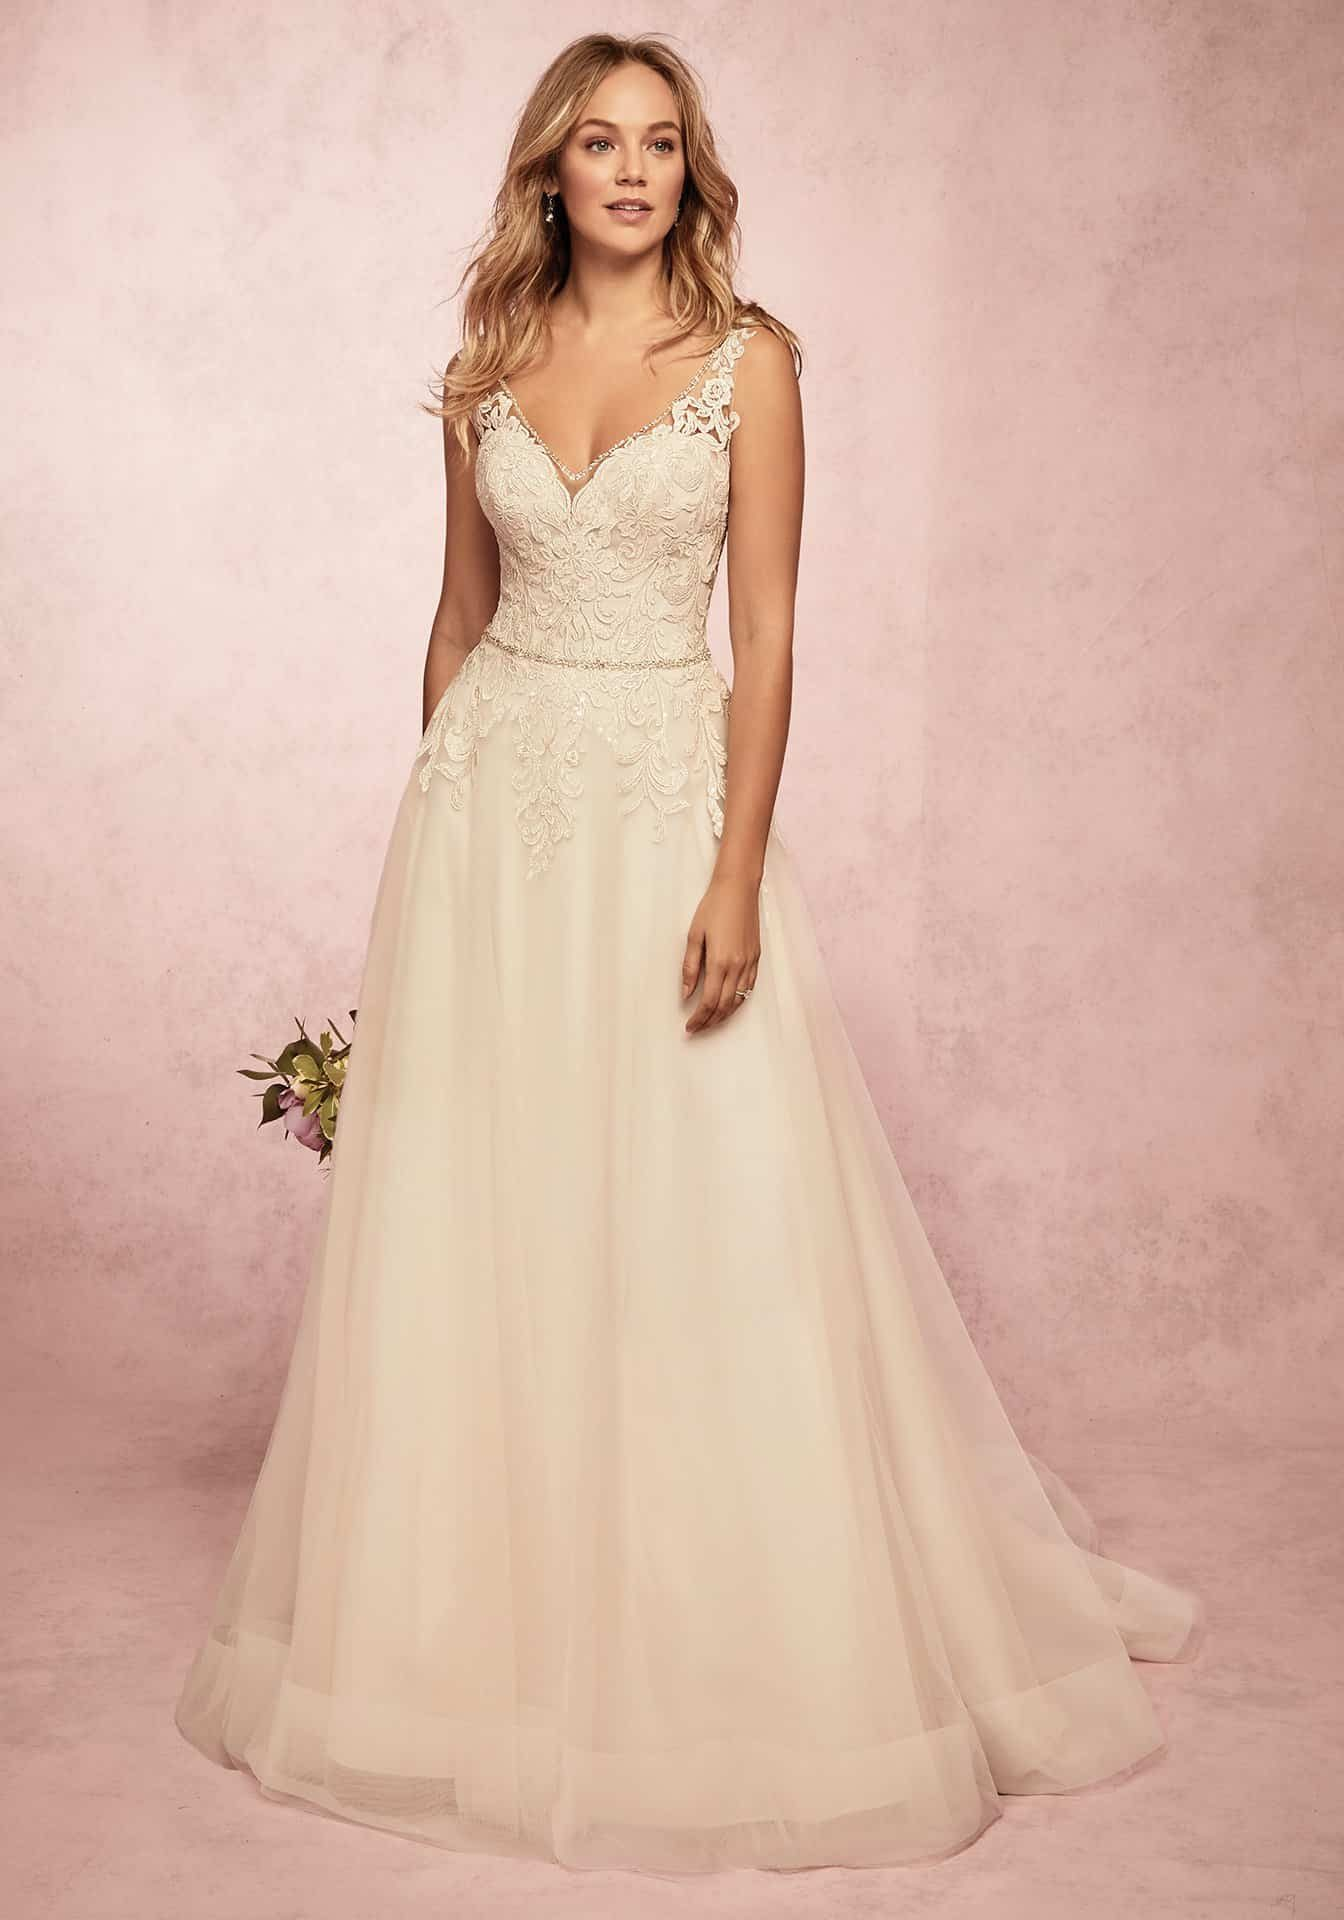 Gabi Wedding Dress Rebecca Ingram | tulle a-line lace wedding dress